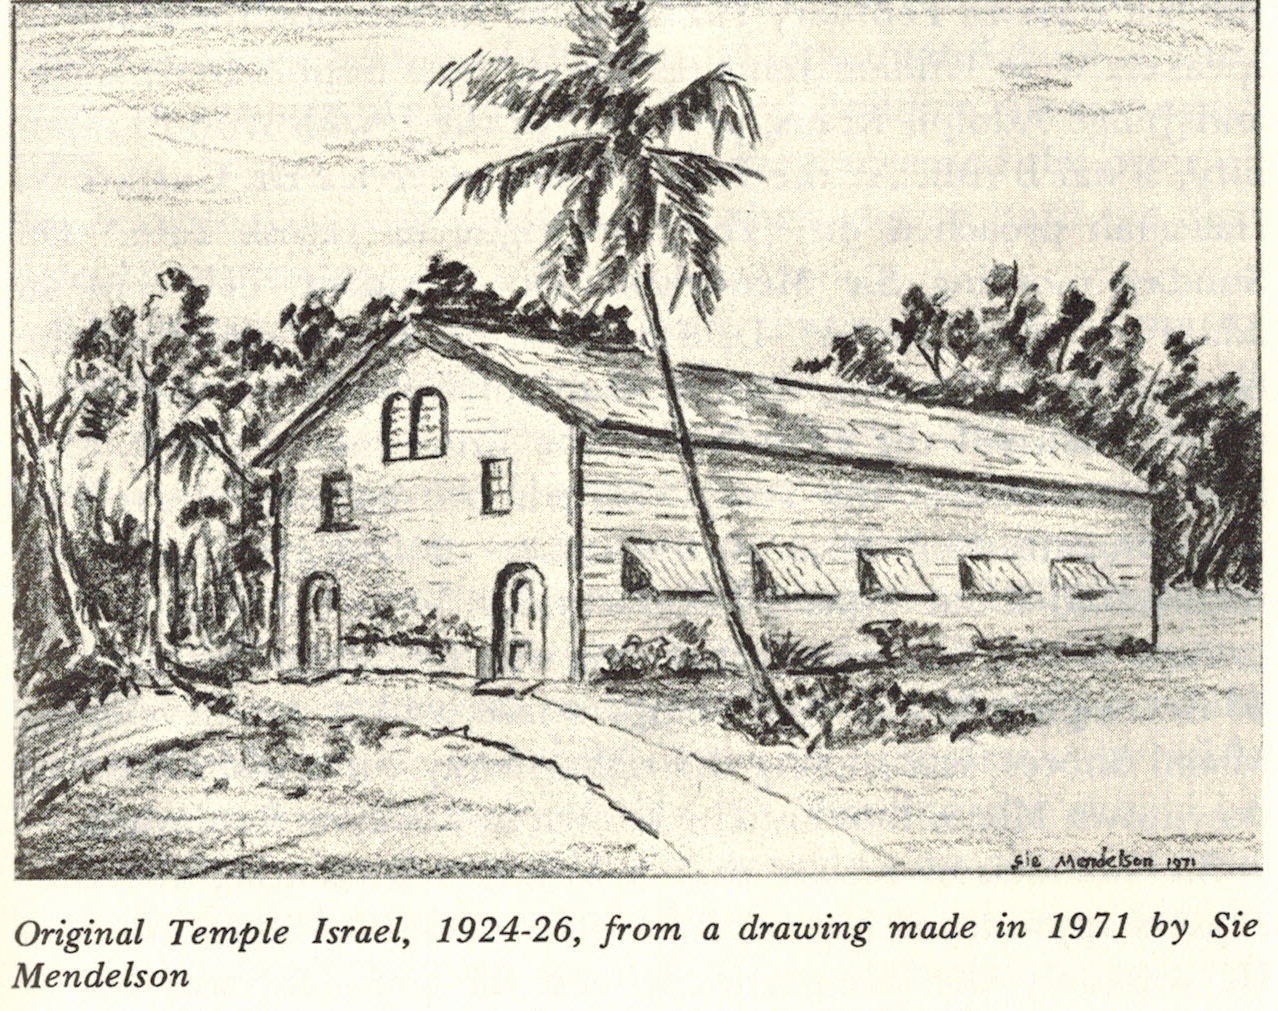 images/history/firsttempleisrael.jpg